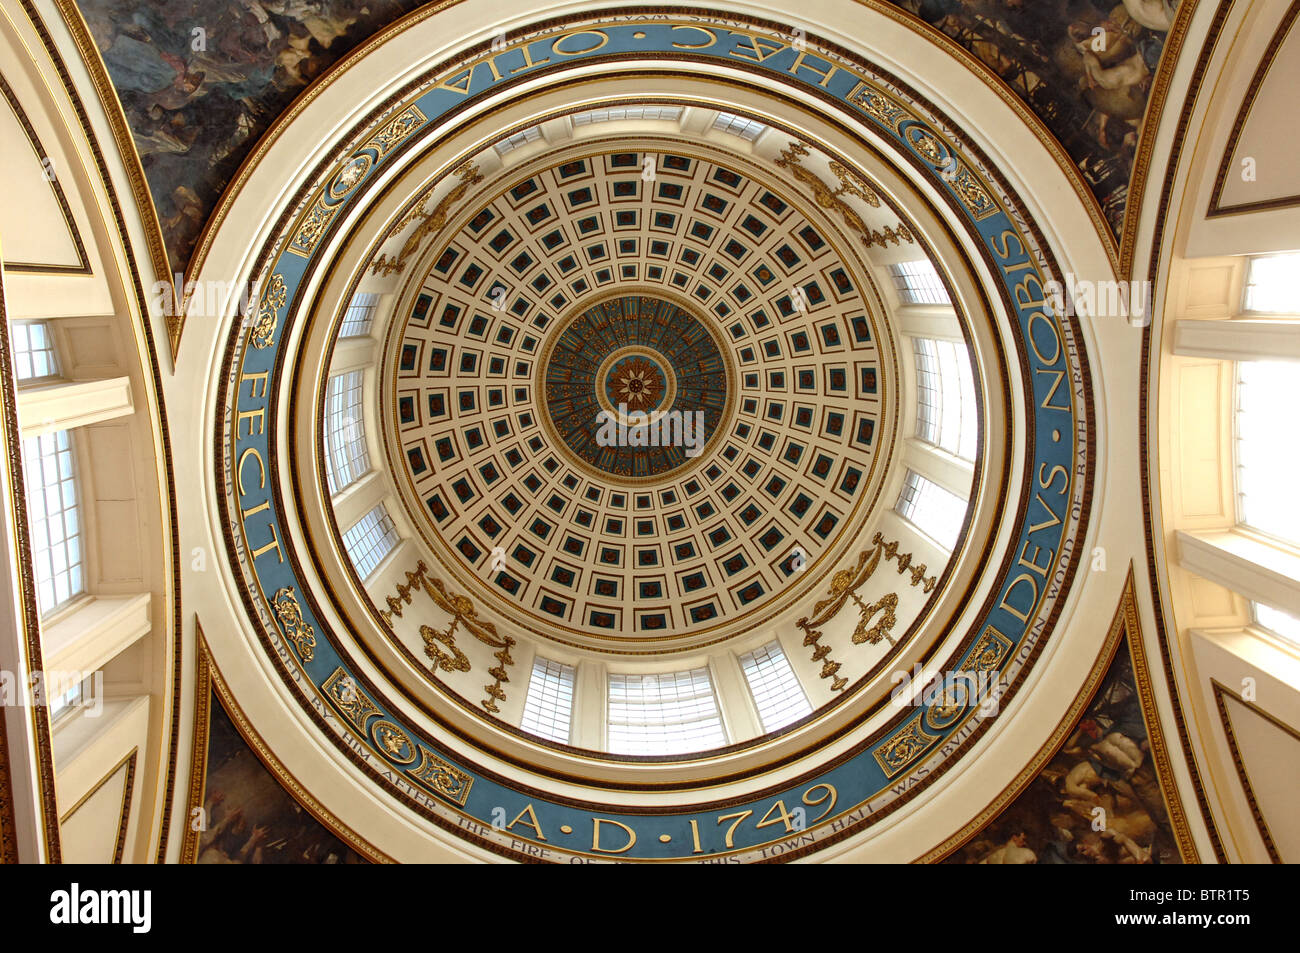 A stunning blue and gold dome in Liverpool Town Hall. - Stock Image